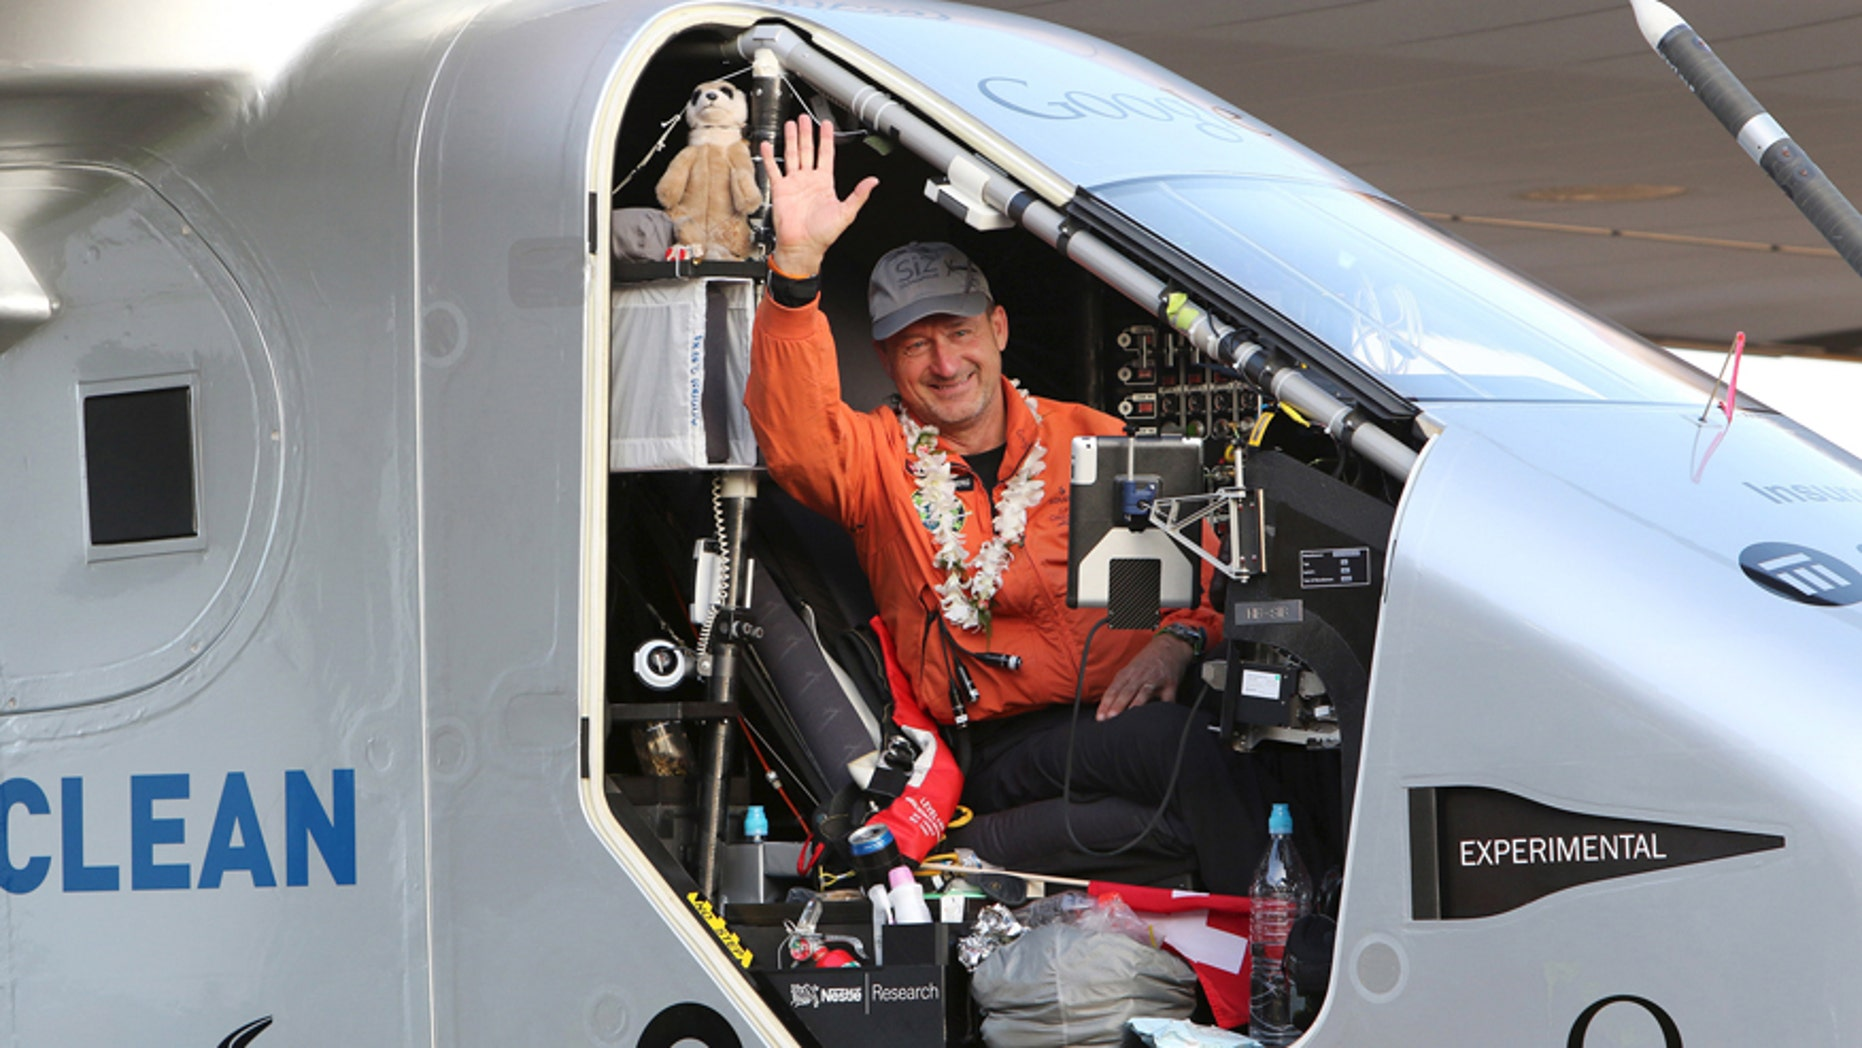 File photo - Pilot Andre Borschberg waves to the crowd after he landed Solar Impulse 2 at Kalaeloa airport, Hawaii, July 3, 2015.